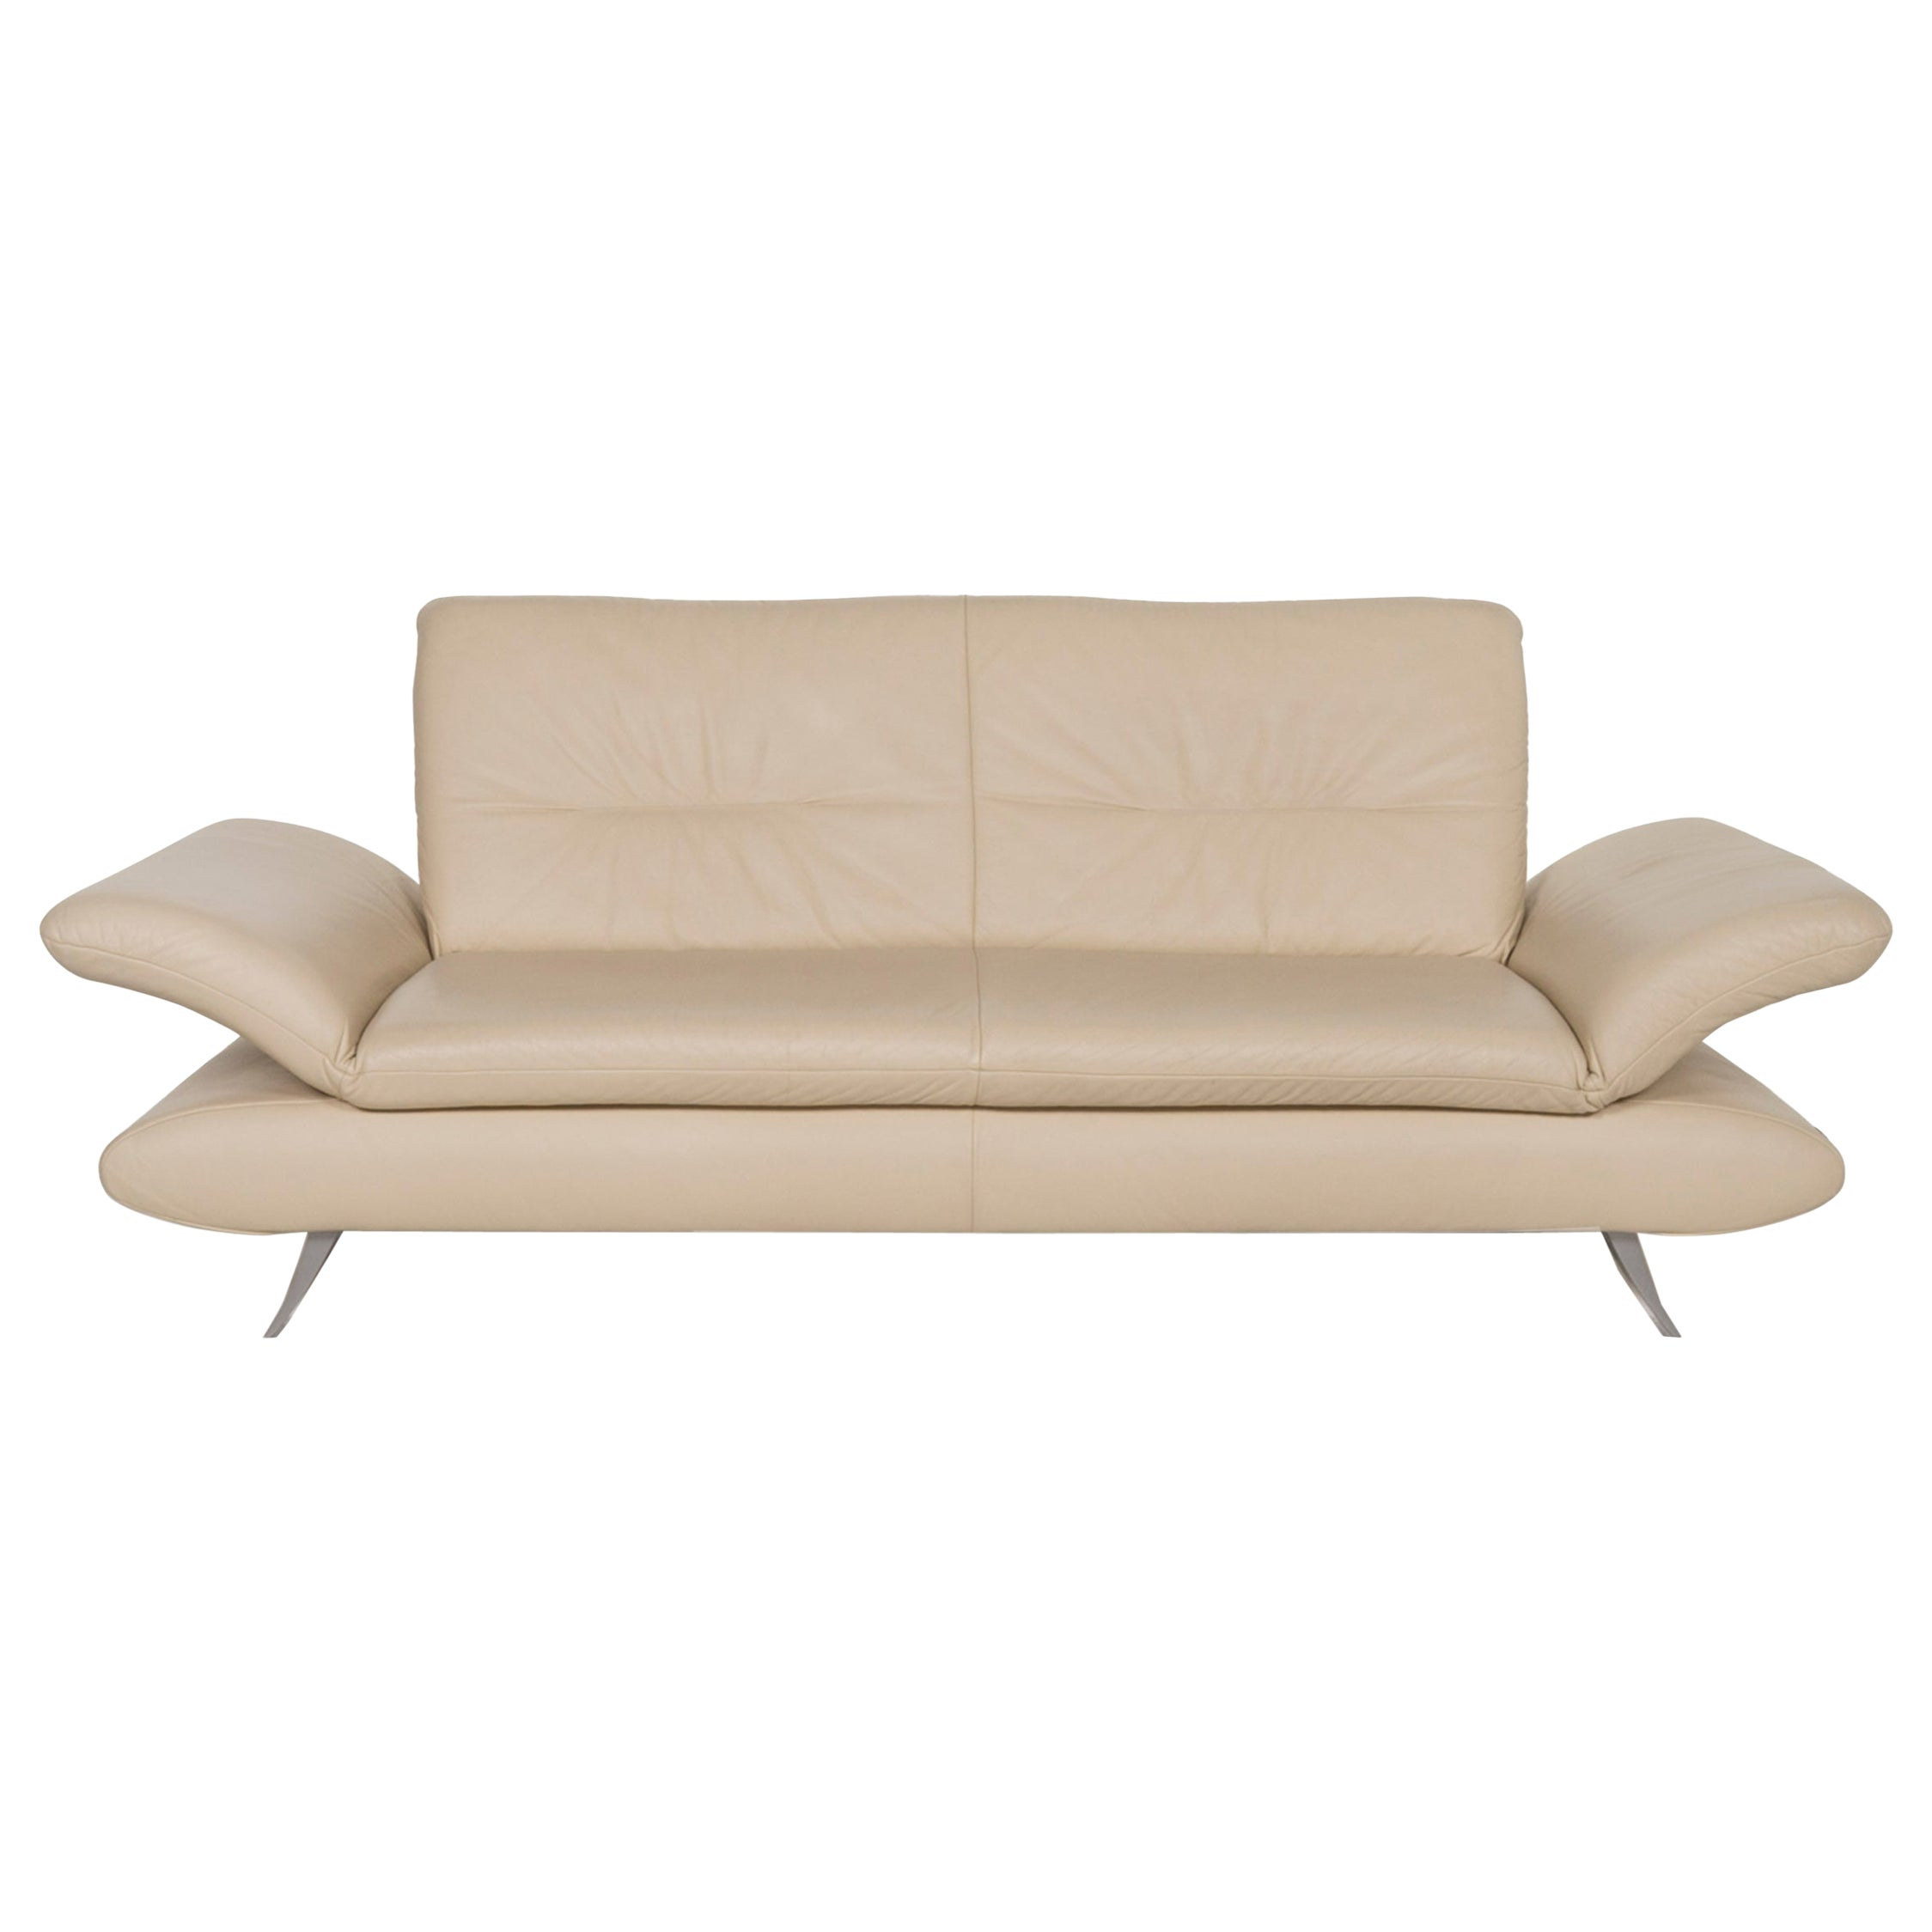 Koinor Rossini Leather Sofa Beige Two-Seater